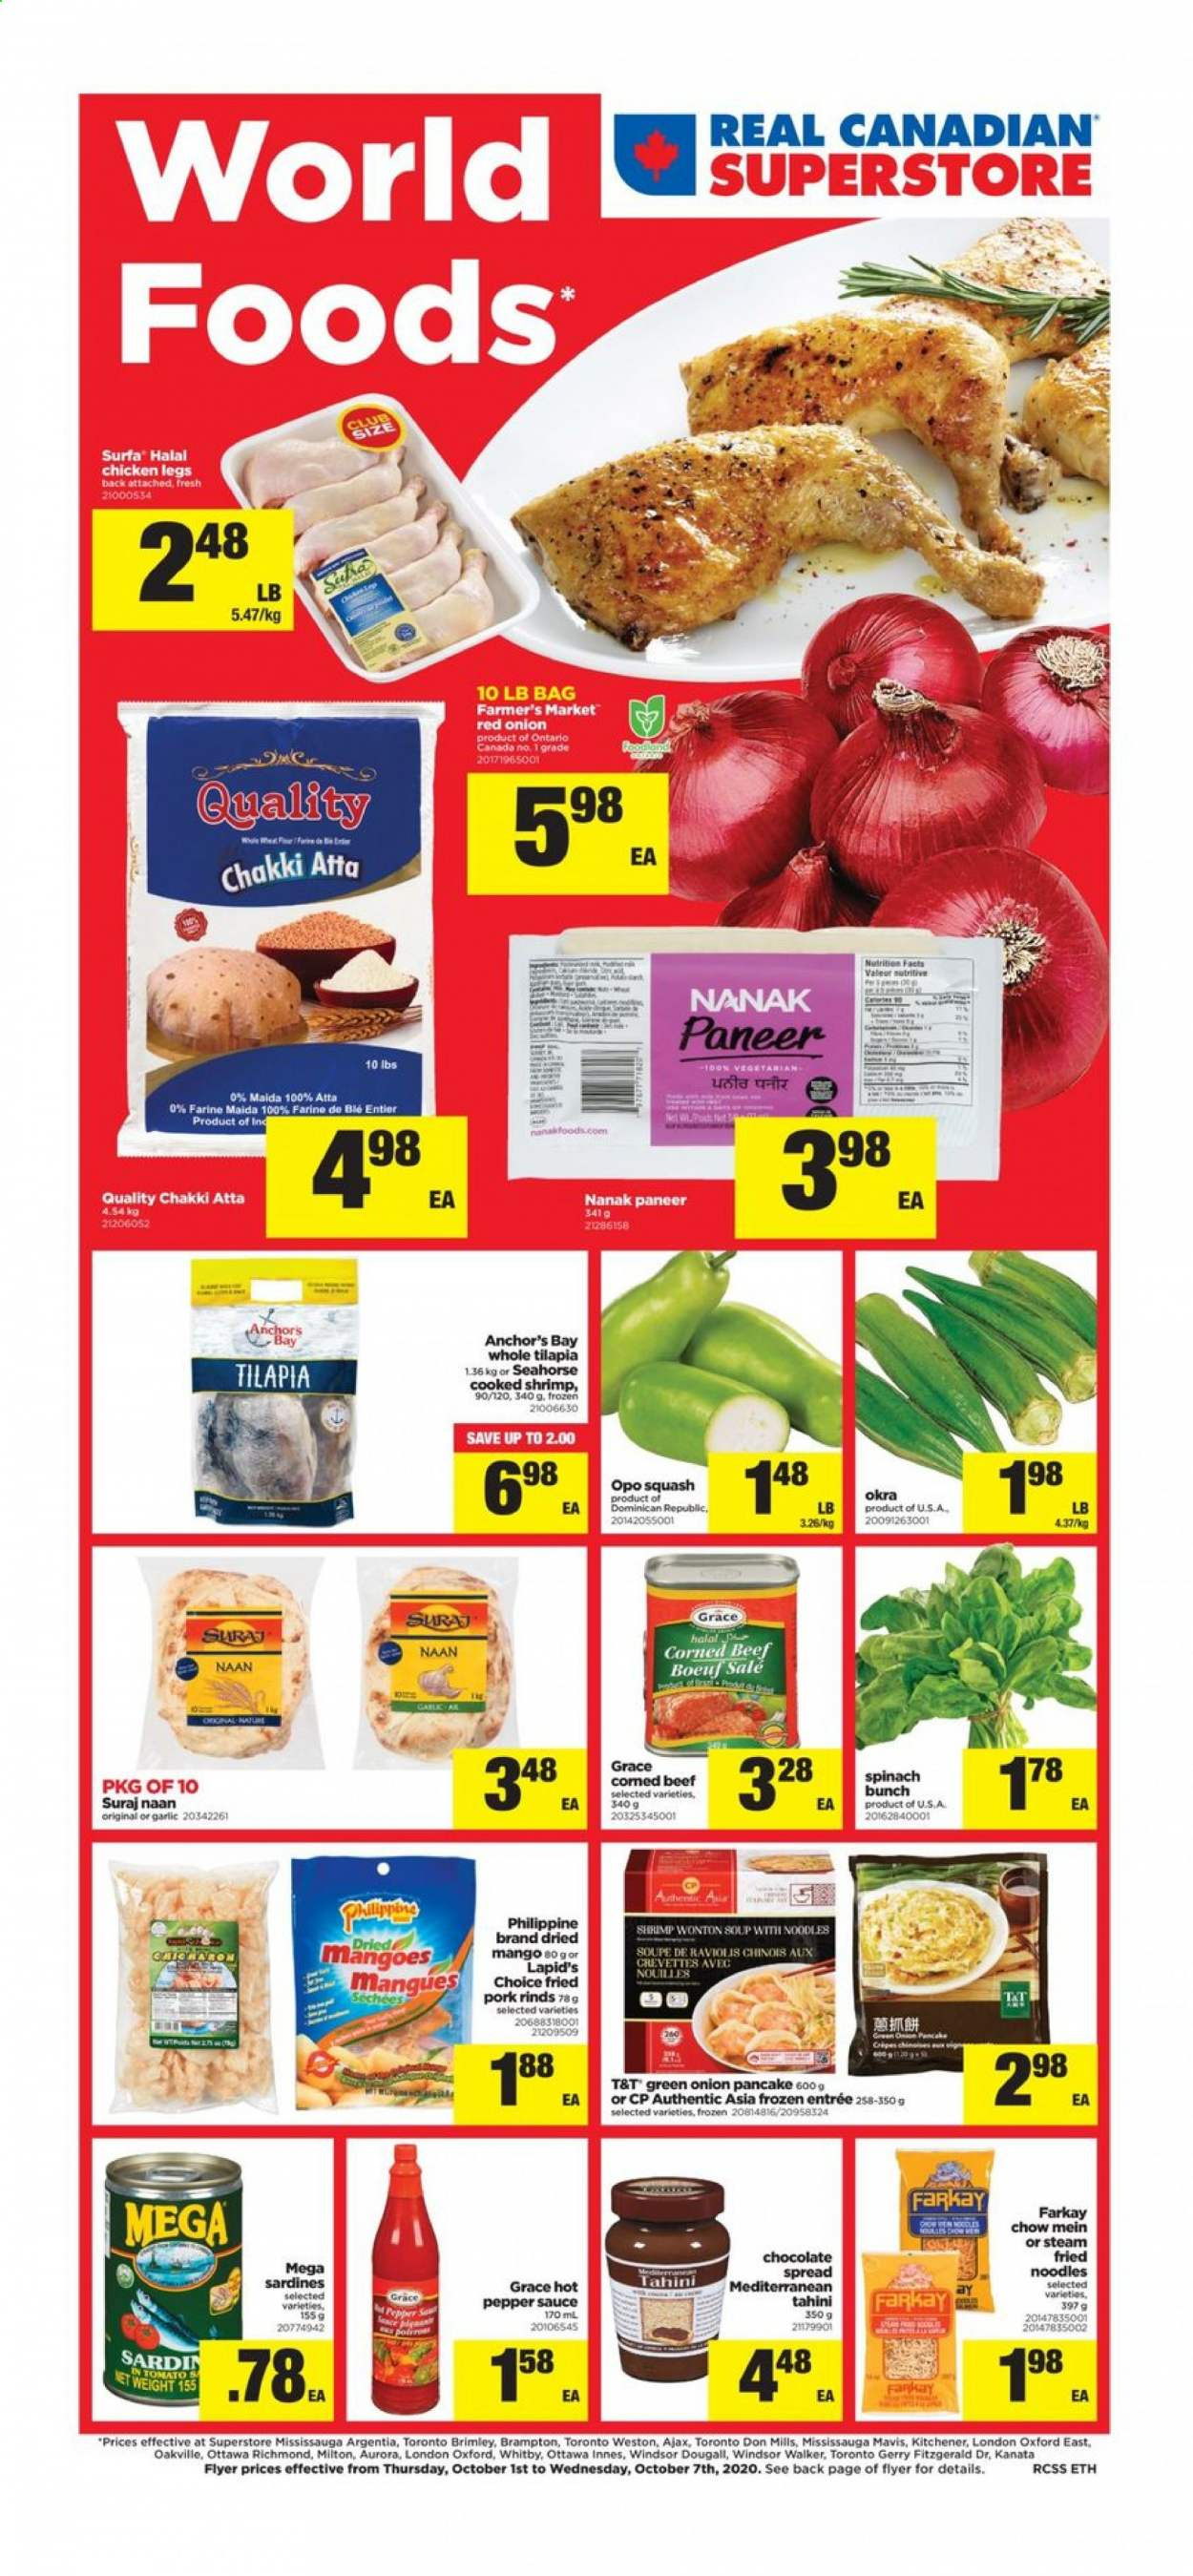 Real Canadian Superstore Flyer - October 01, 2020 - October 07, 2020 - Sales products - bag, beef meat, corned beef, frozen, garlic, mango, sardines, shrimp, spinach, squash, tahini, tilapia, pork meat, chicken, chicken legs, paneer, okra, onion, chow, chocolate, spring onion, noodles, pepper, sauce, blé, crevette, farine, soupe, nouilles, úl, mangoes, pancake, anchor, shrimps, tomato, frozen 2, steam. Page 1.